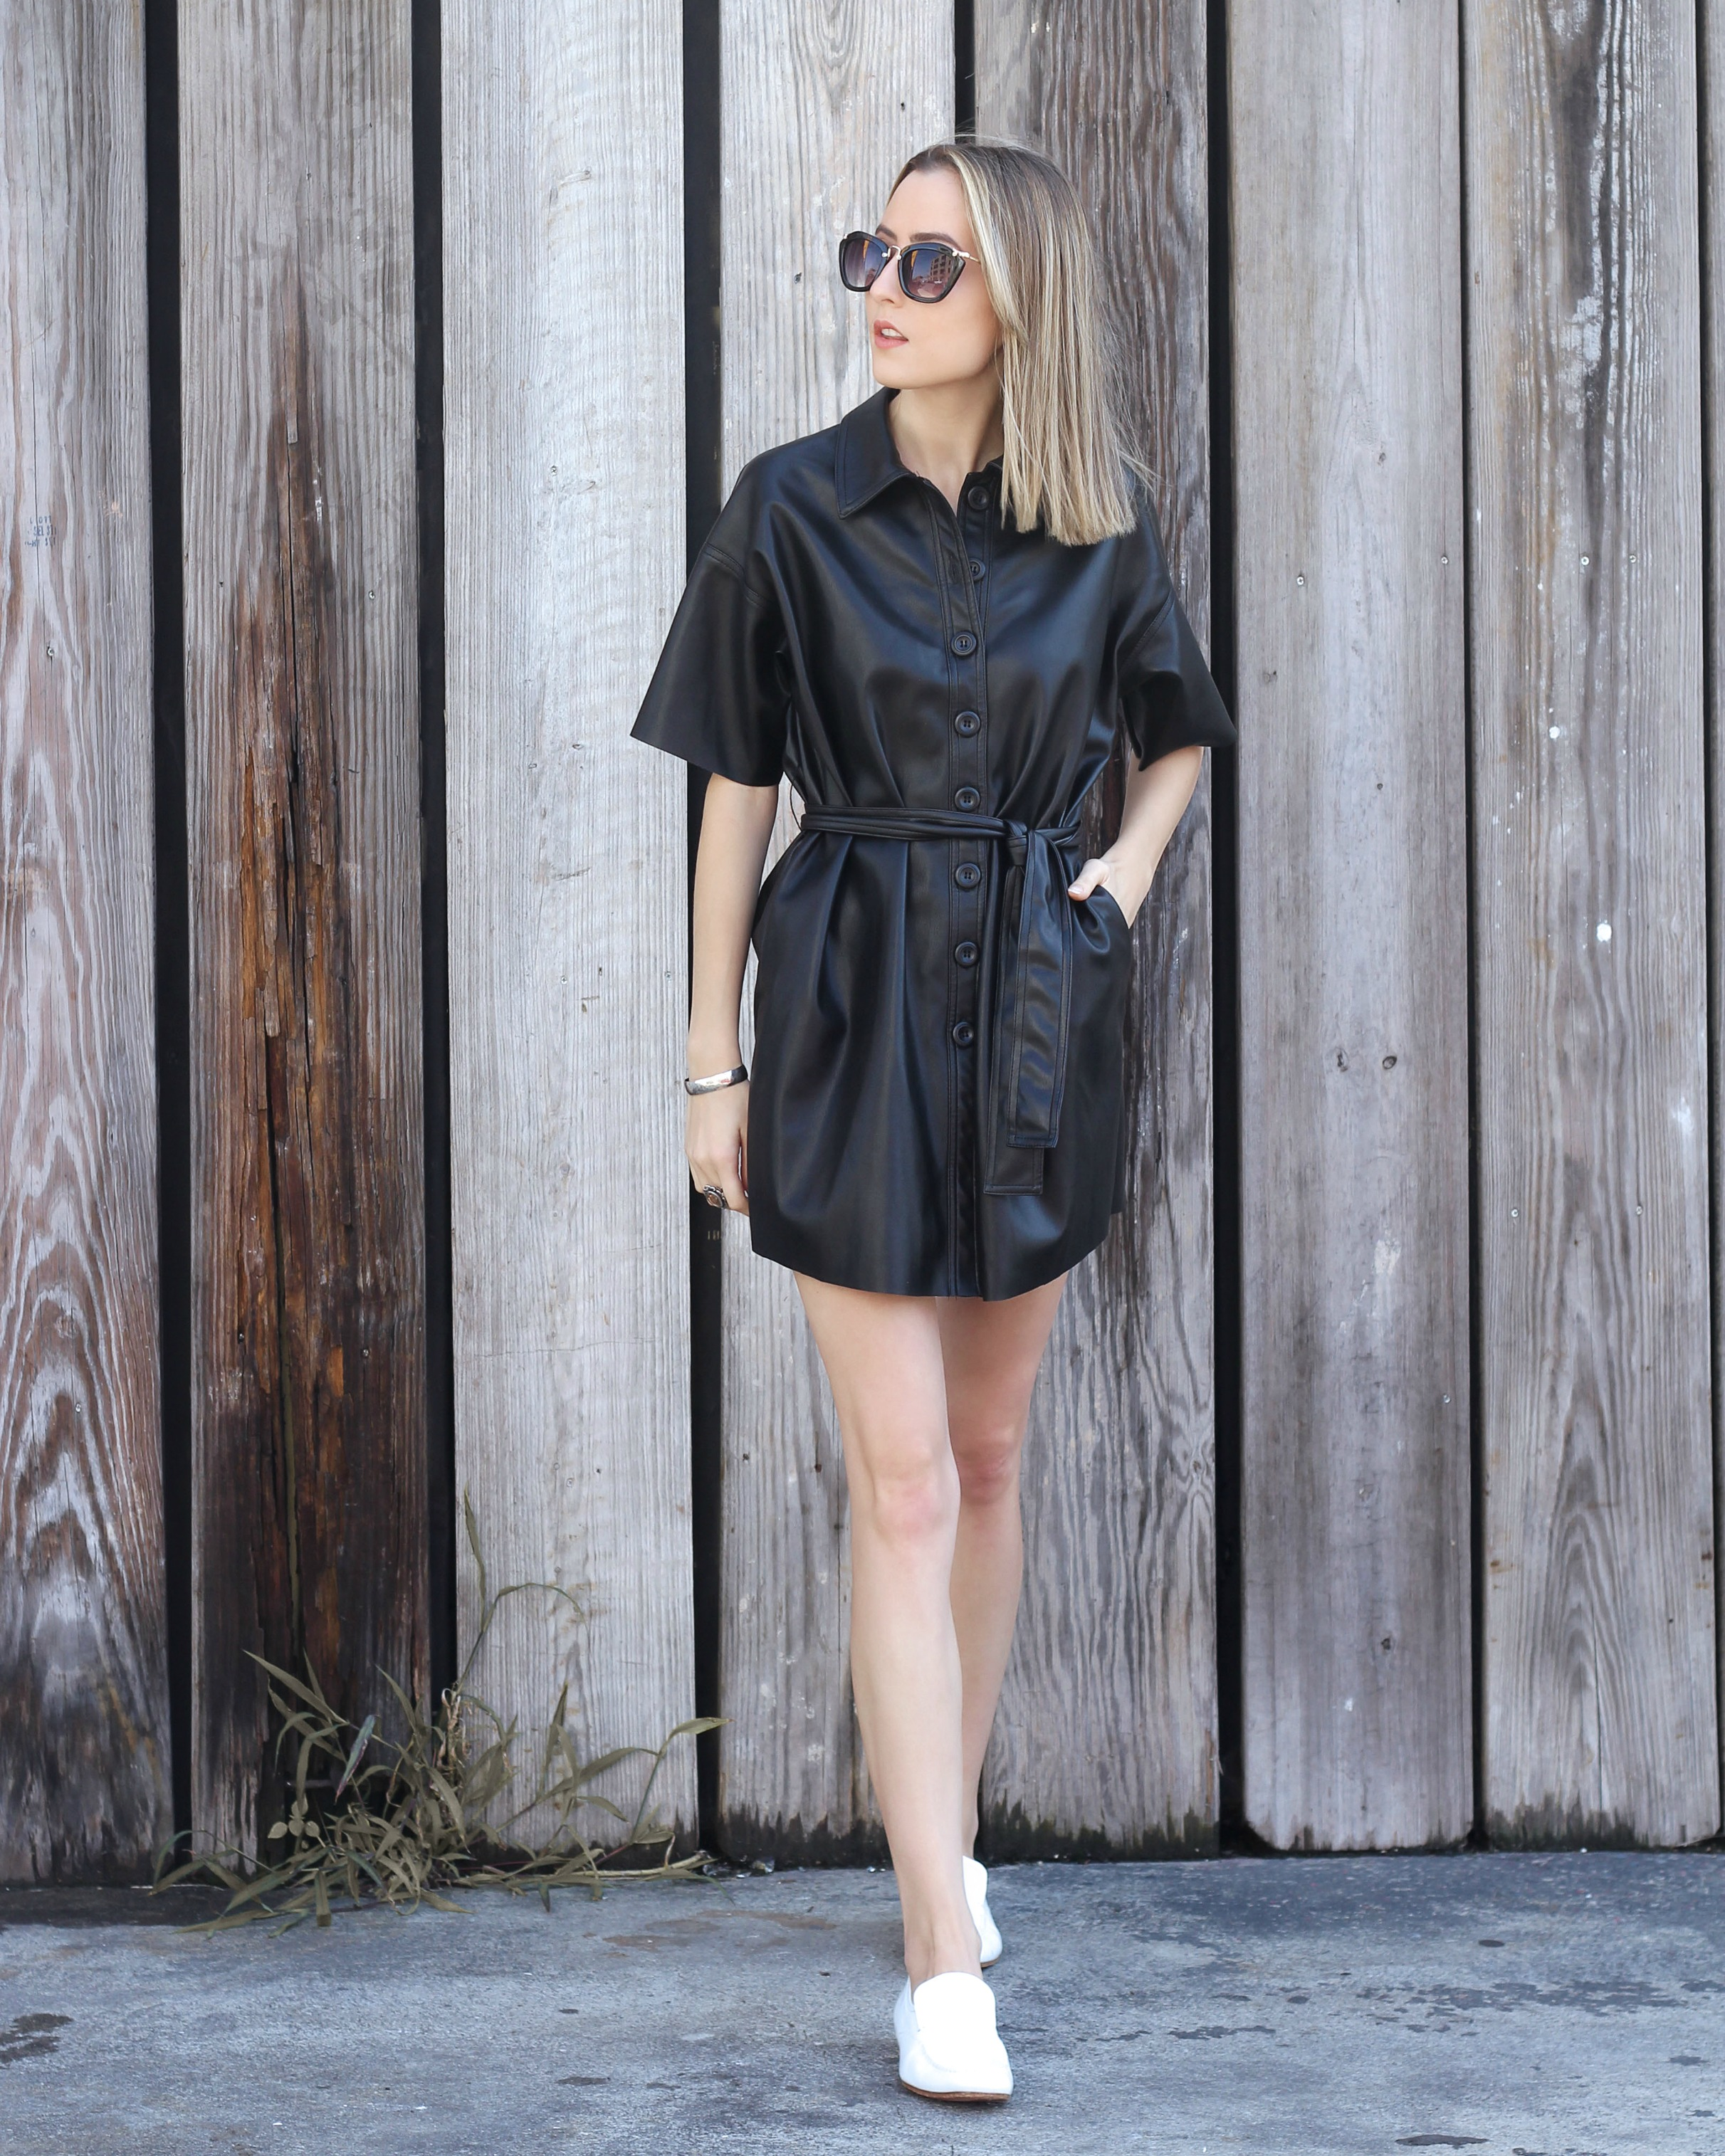 Leather Shirtdress-1.jpg